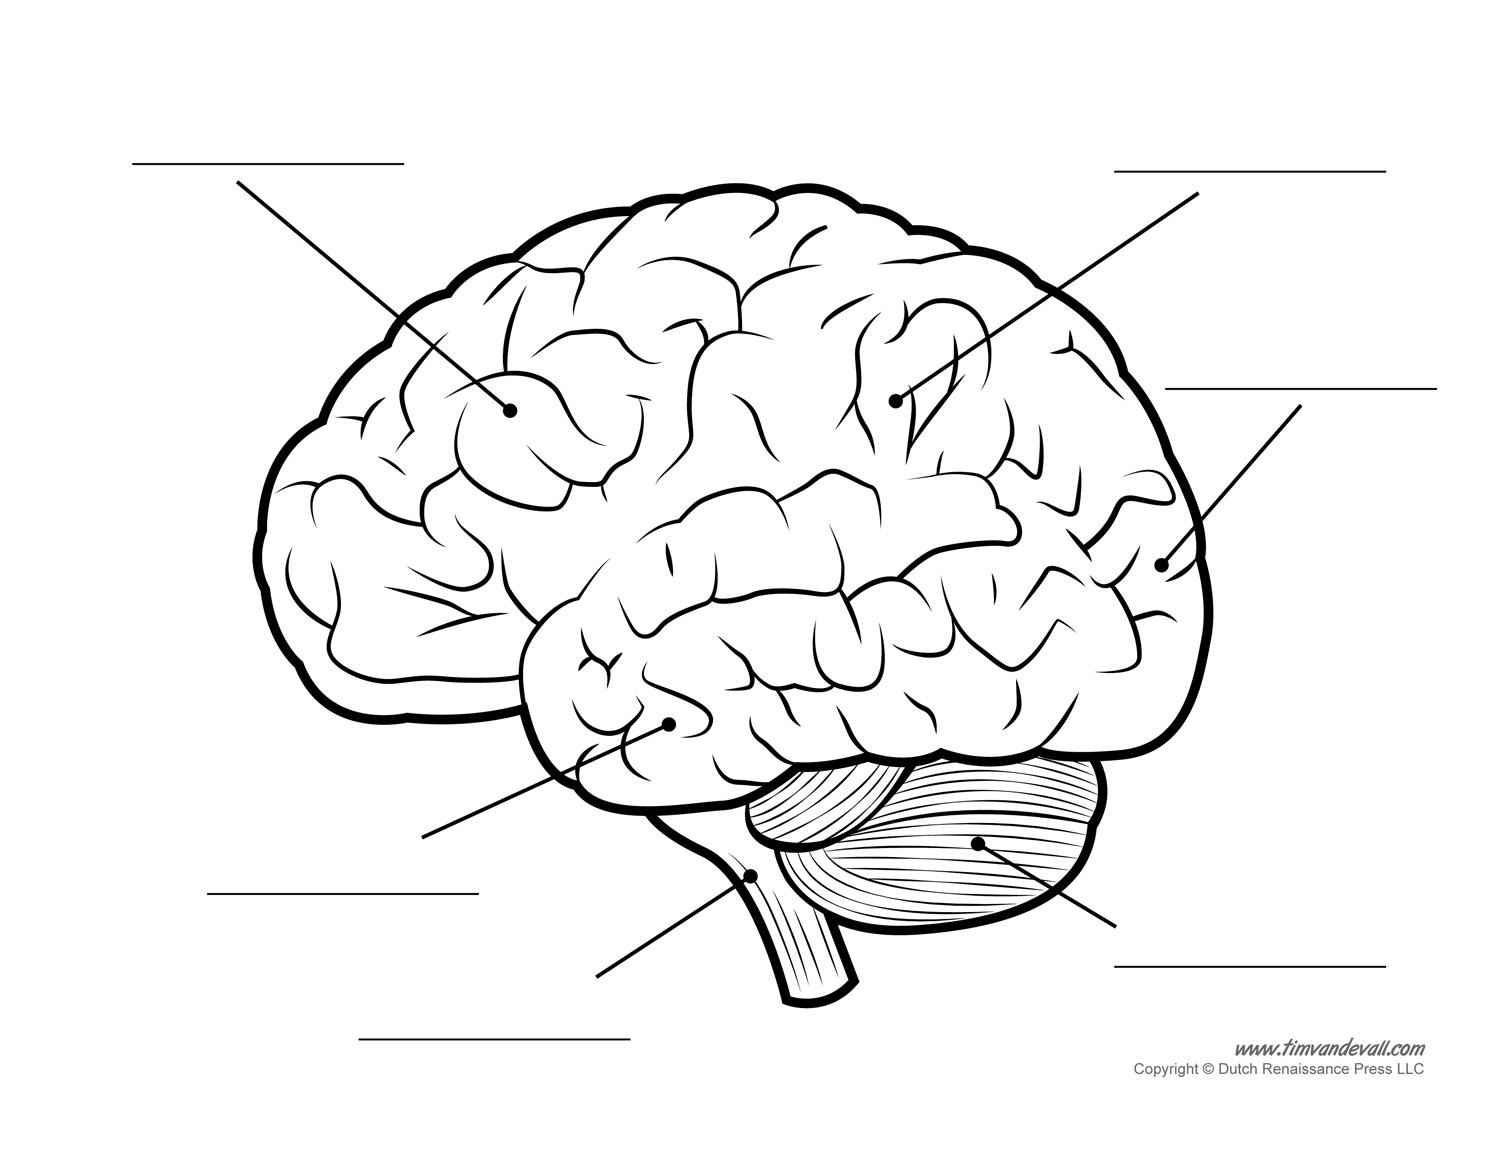 Blank Diagram of The Brain